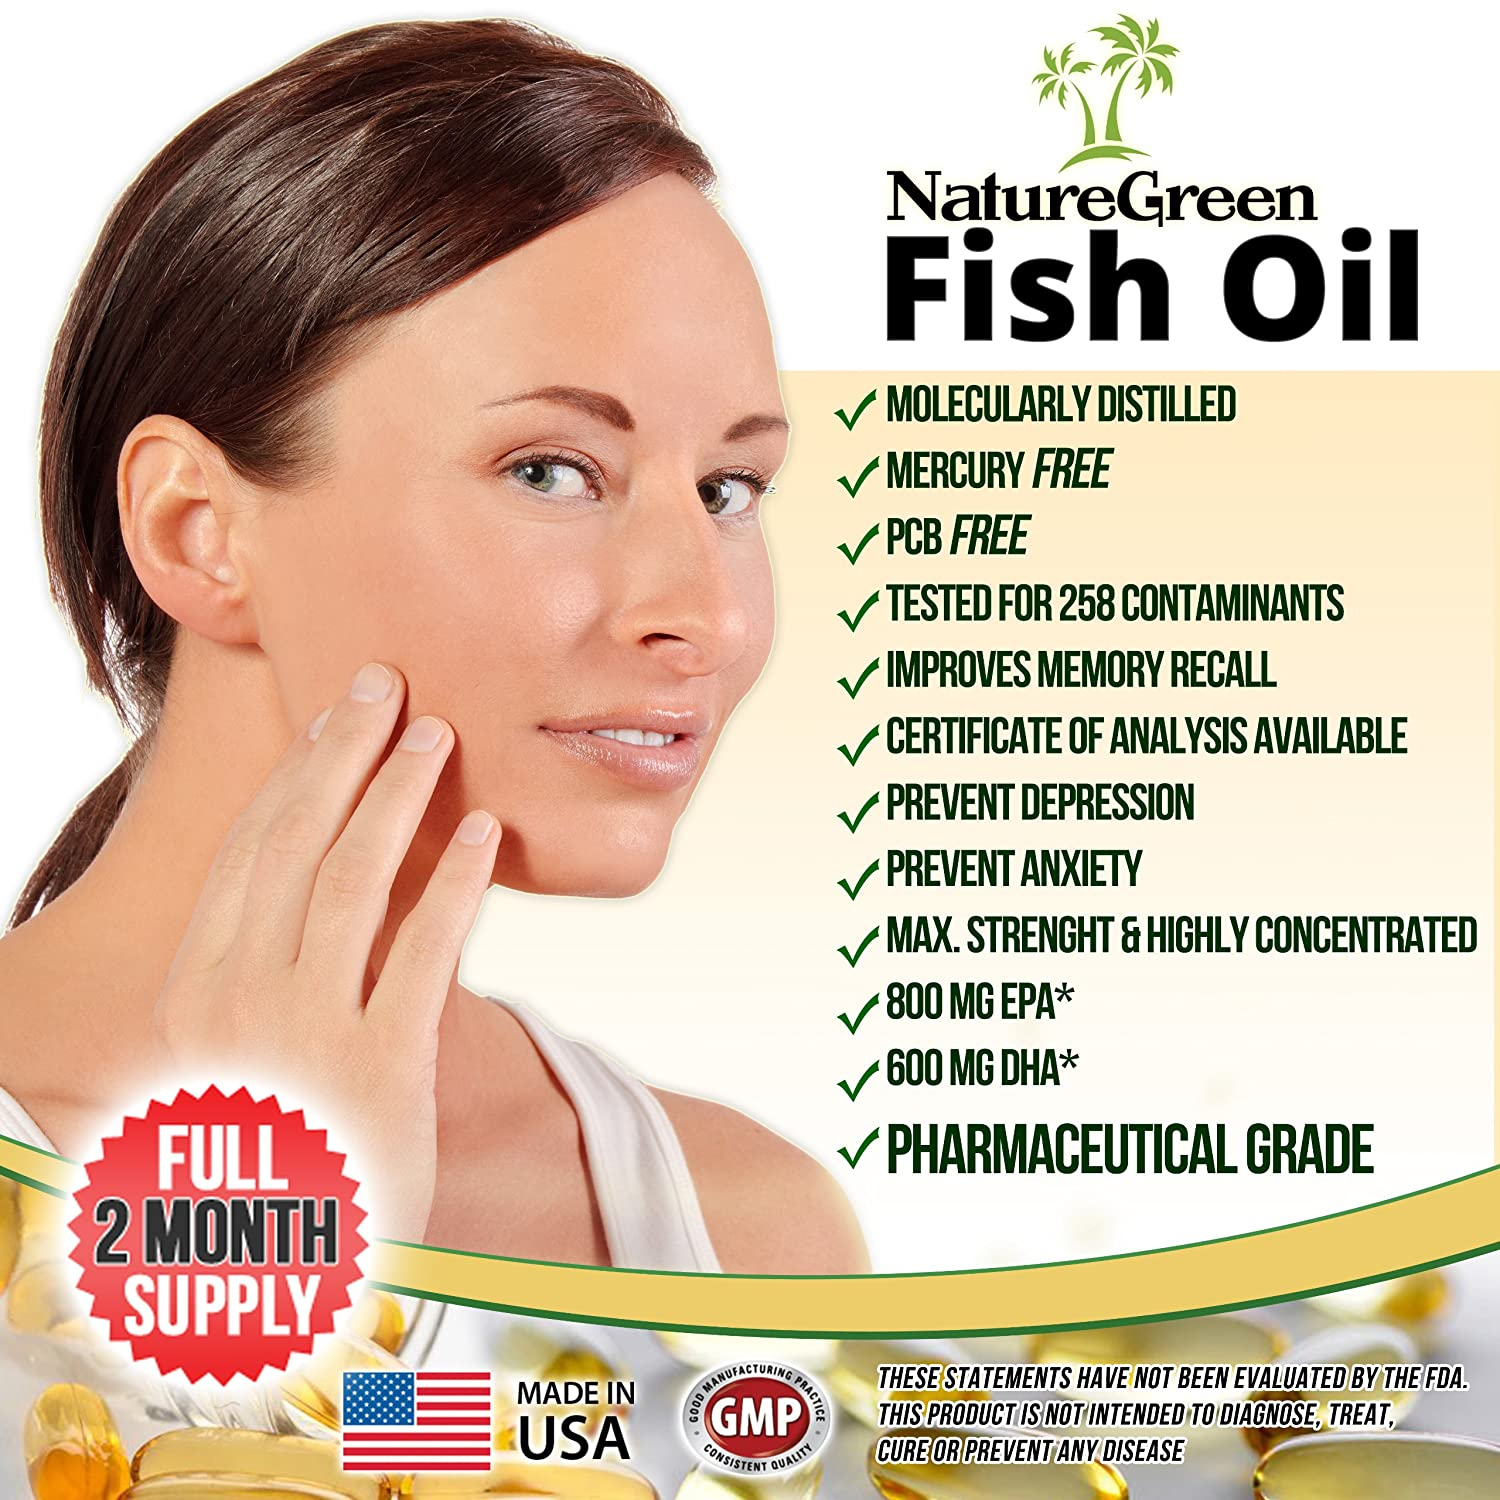 What are the benefits of fish oil capsules